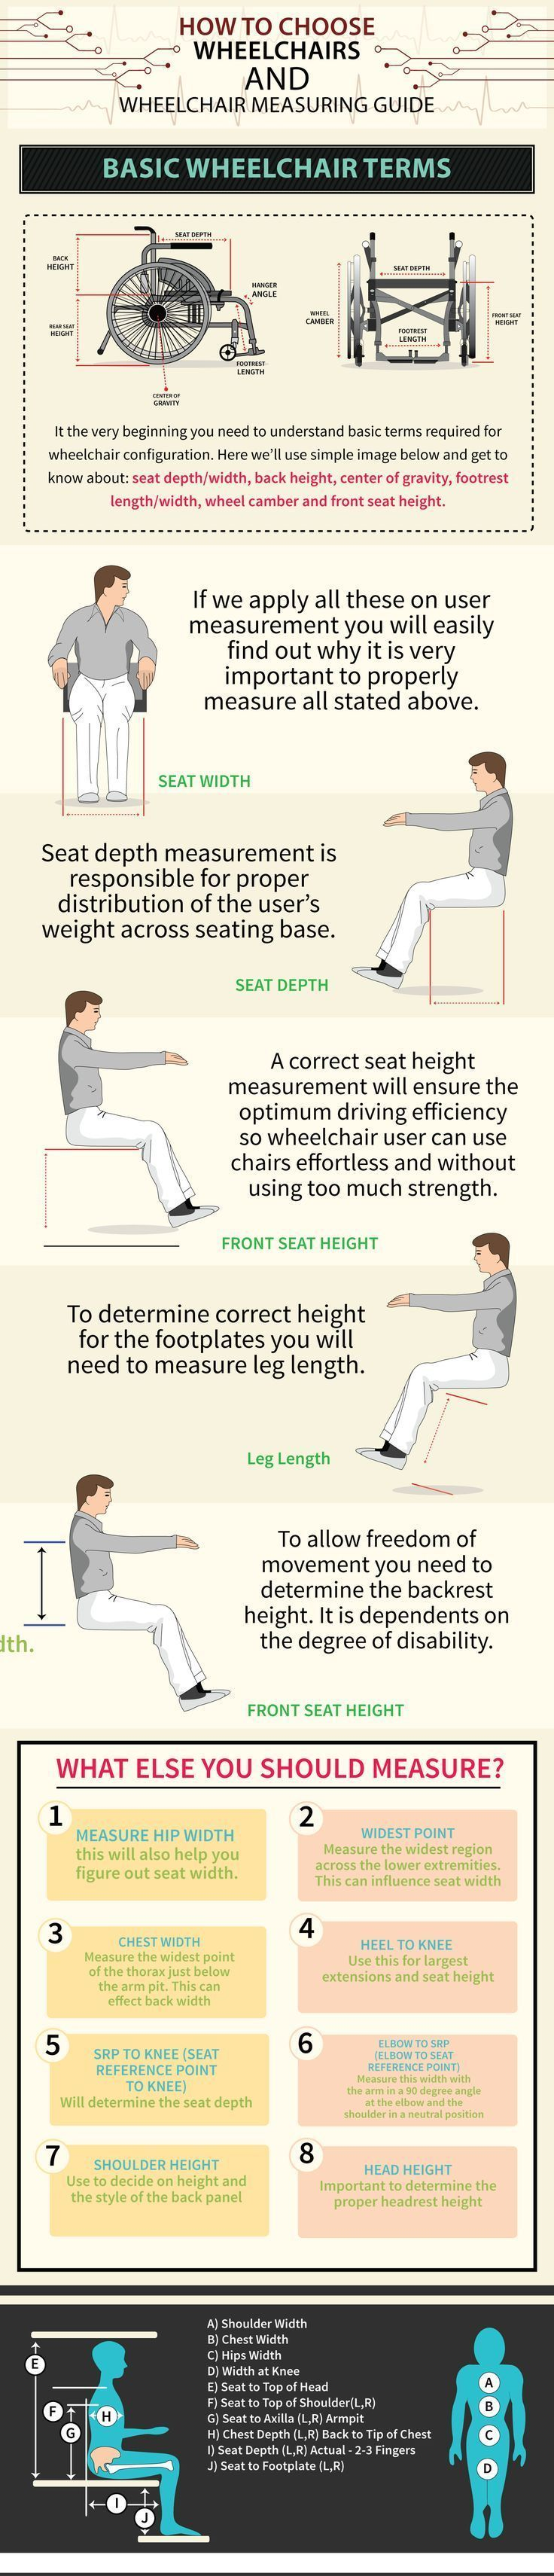 Bright idea 4 physical therapy - Activities